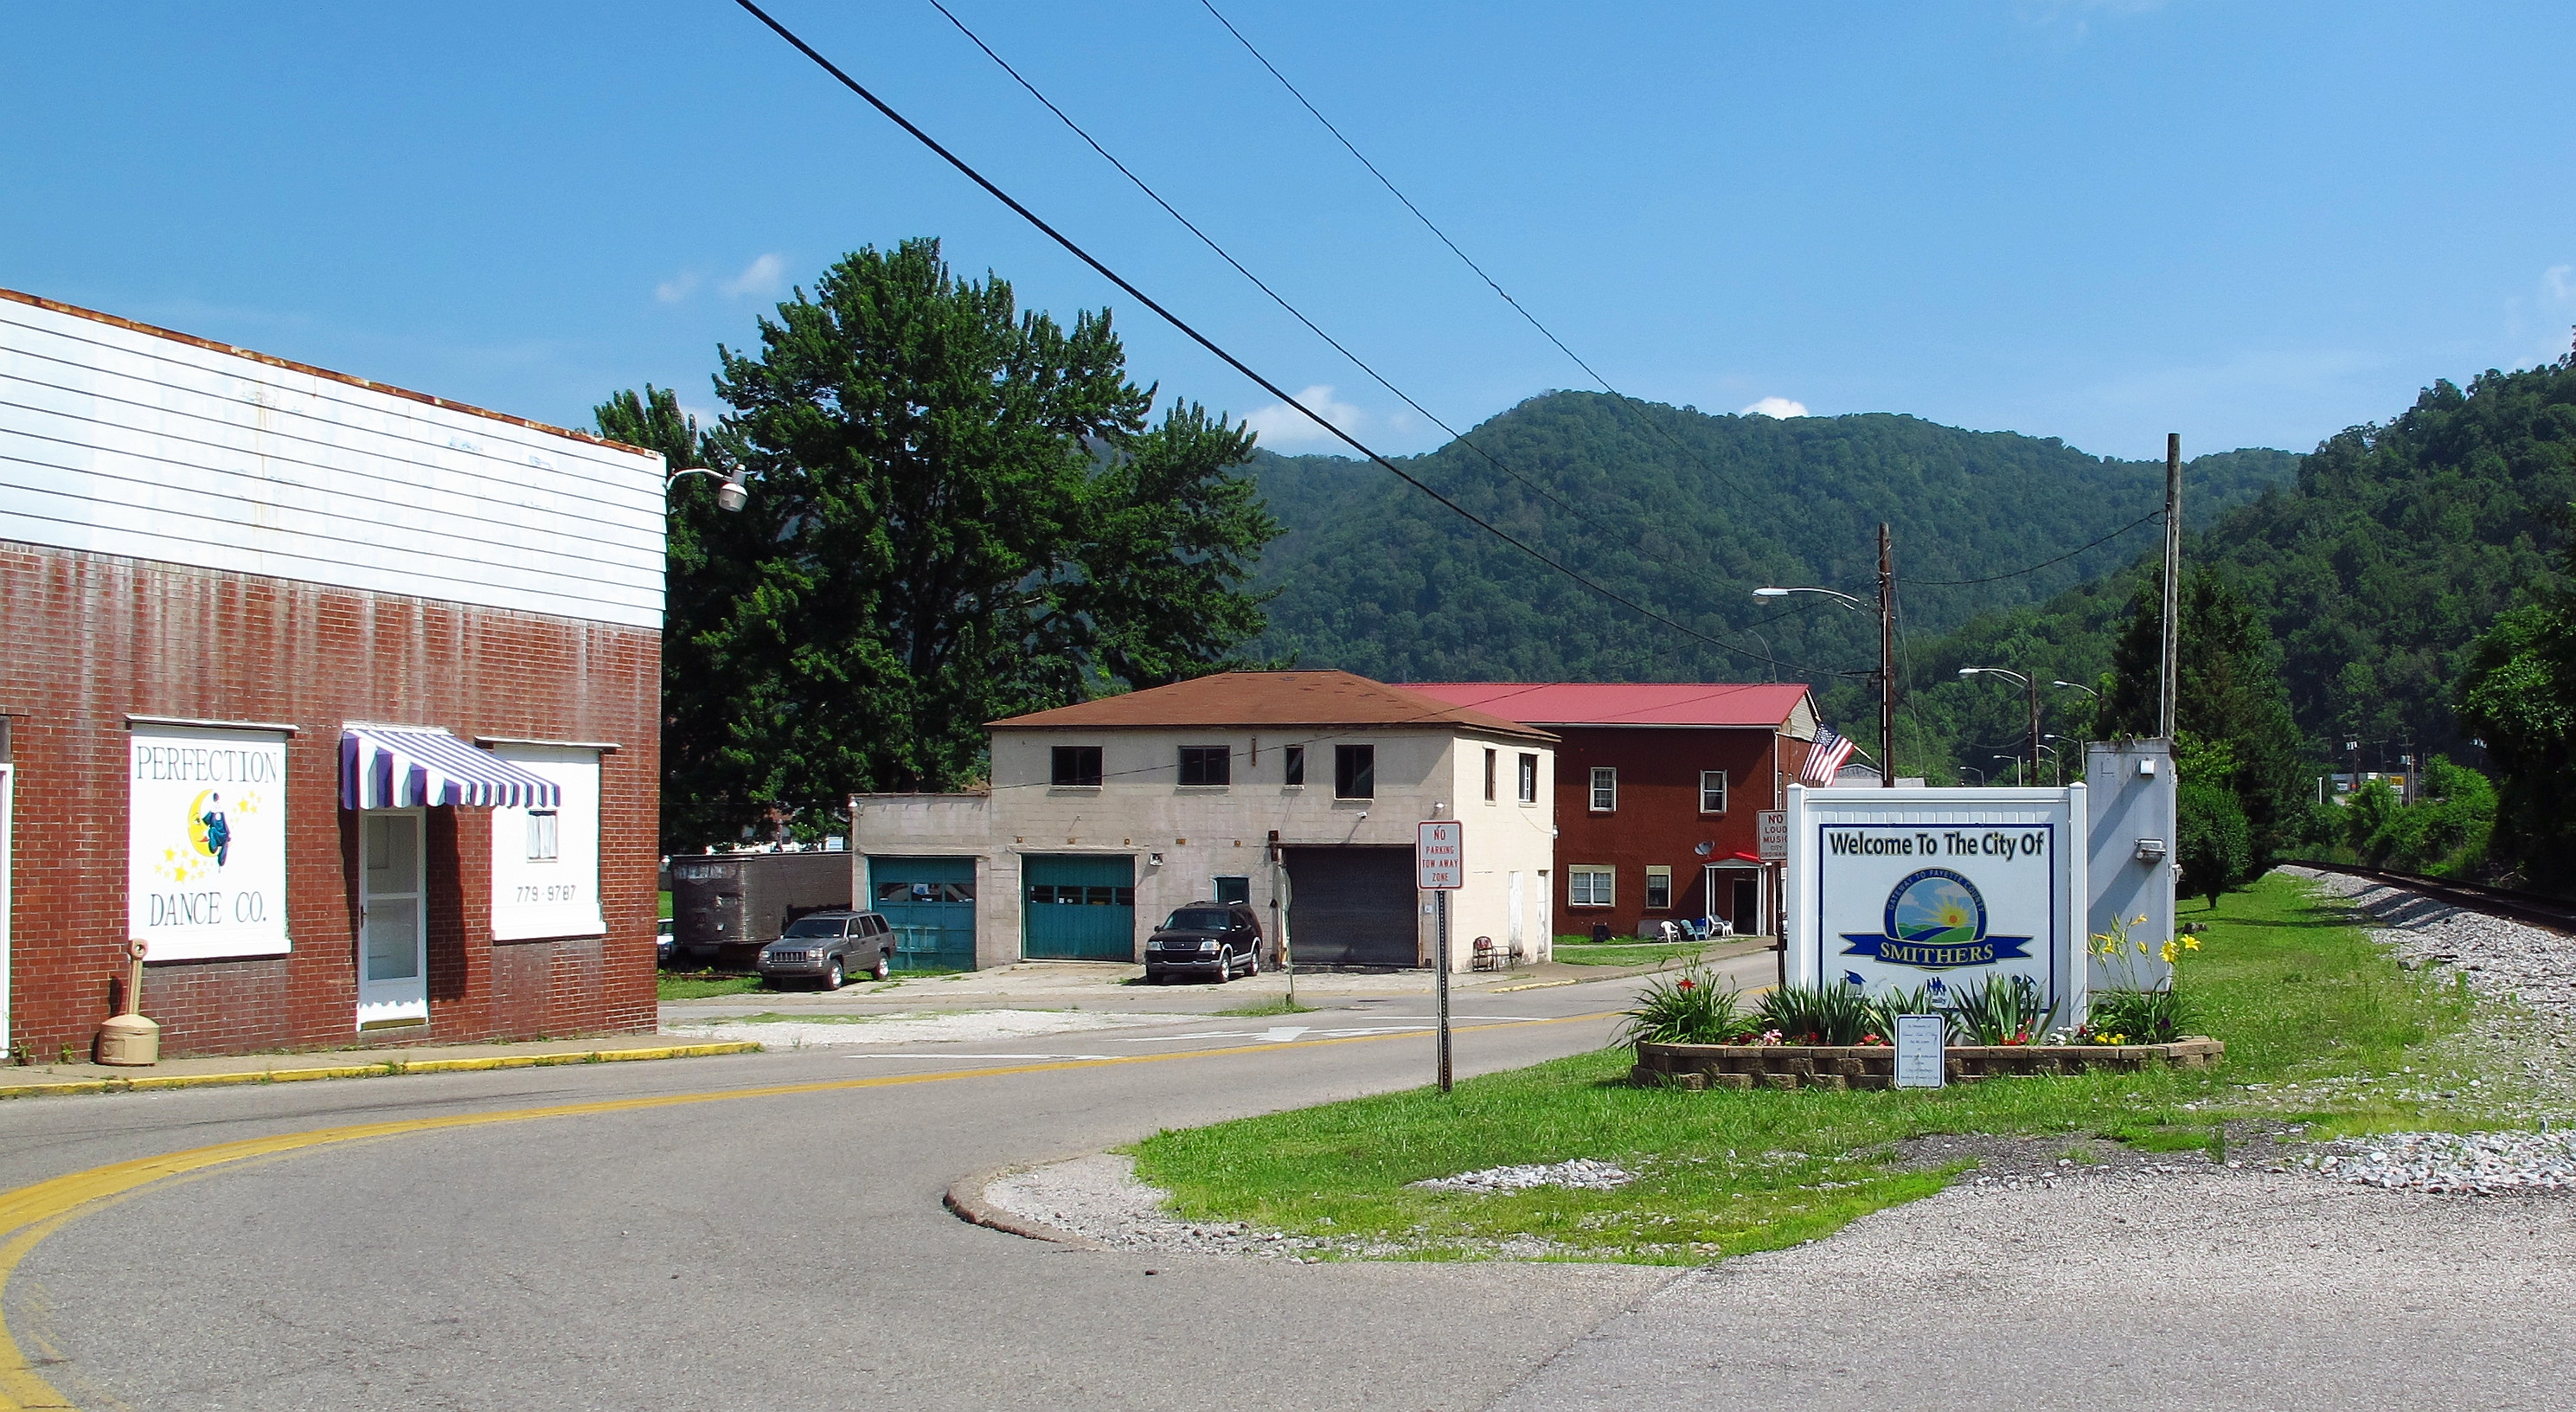 Smithers West Virginia Wikipedia